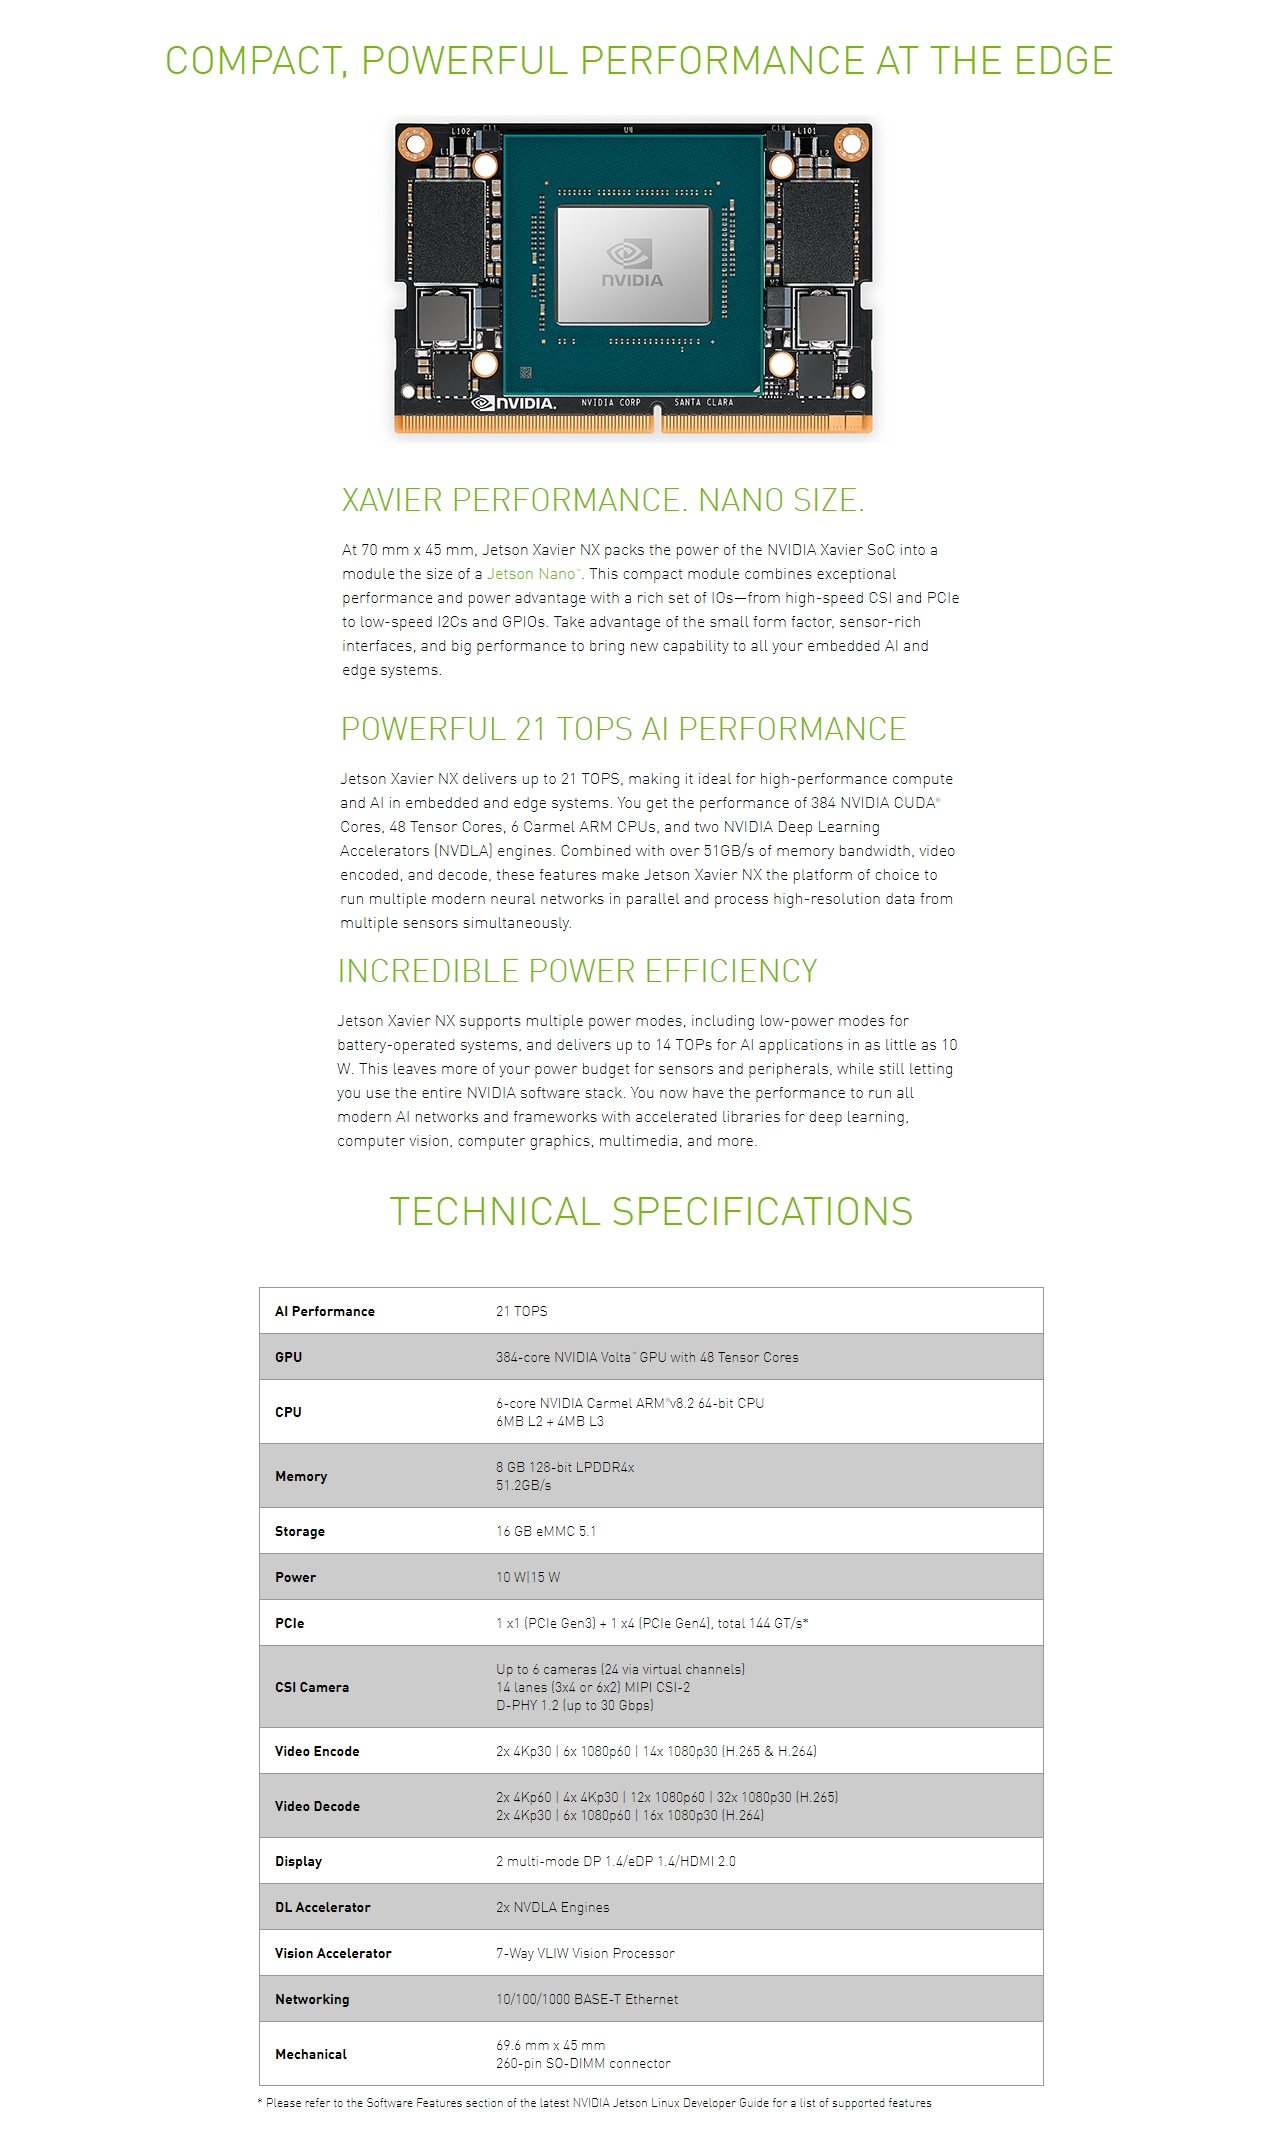 A large marketing image providing additional information about the product NVIDIA Jetson Xavier NX Module - Additional alt info not provided